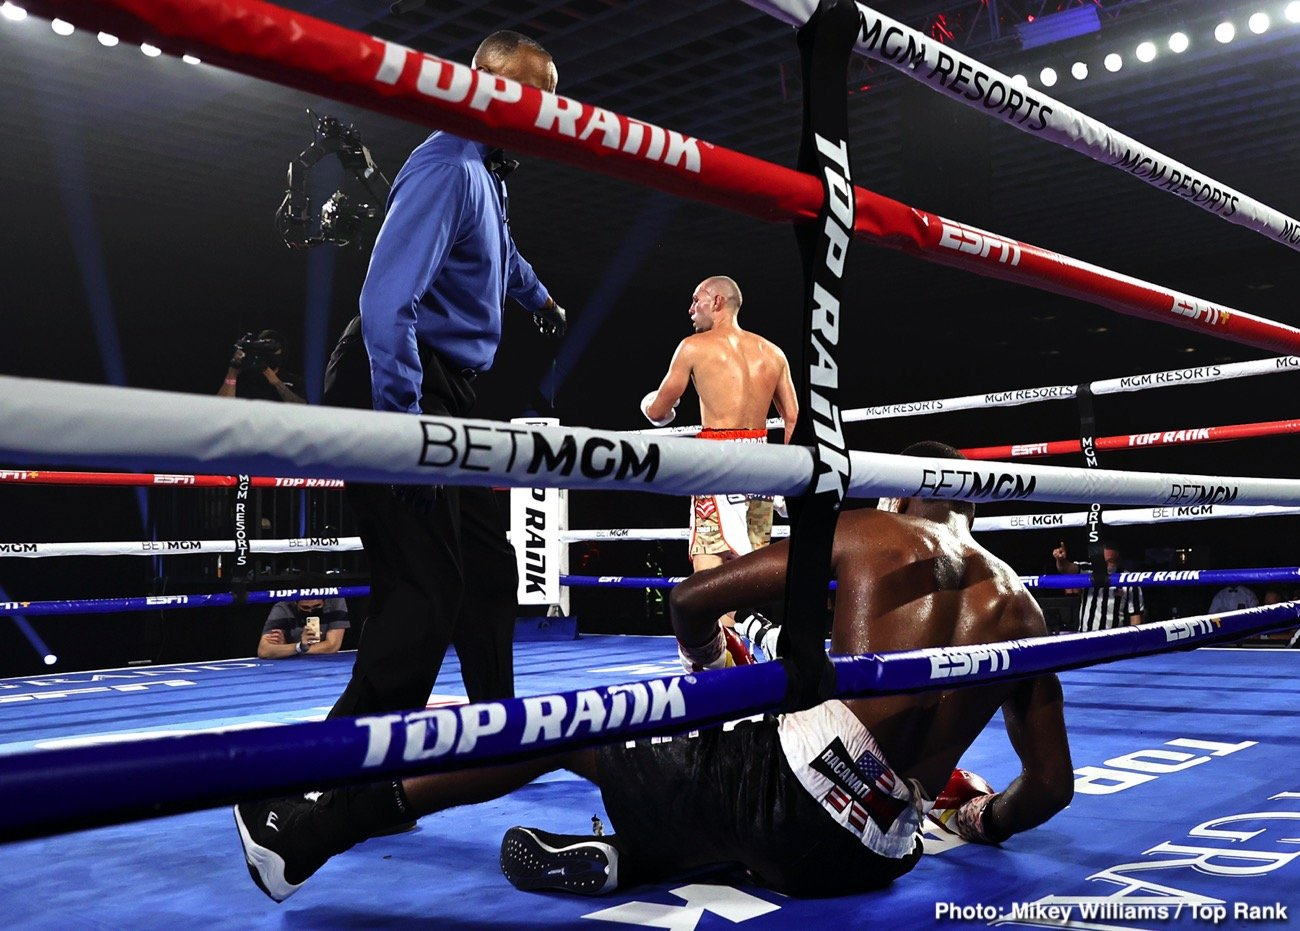 Boxing Results - Former two-weight world champion Jose Pedraza's quest for a title in a third weight class is alive and well. Pedraza, from Cidra, Puerto Rico, toppled Mikkel LesPierre via unanimous decision (100-88 and 99-89 2x) Thursday night in a junior welterweight bout.